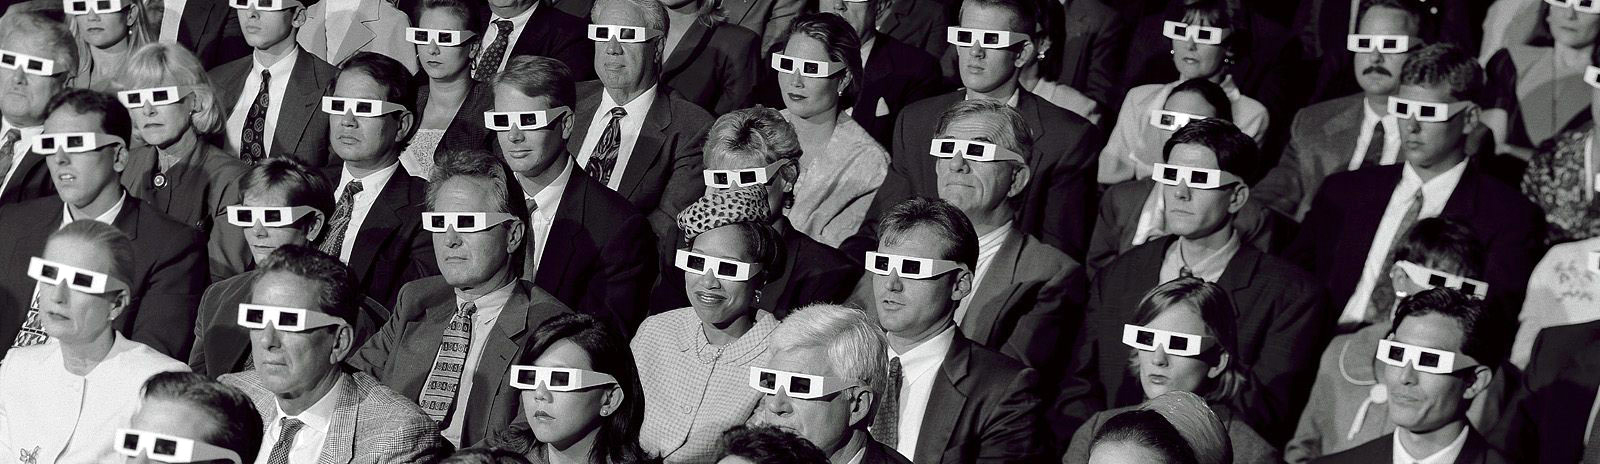 audience-with-3d-glasses-3.jpg